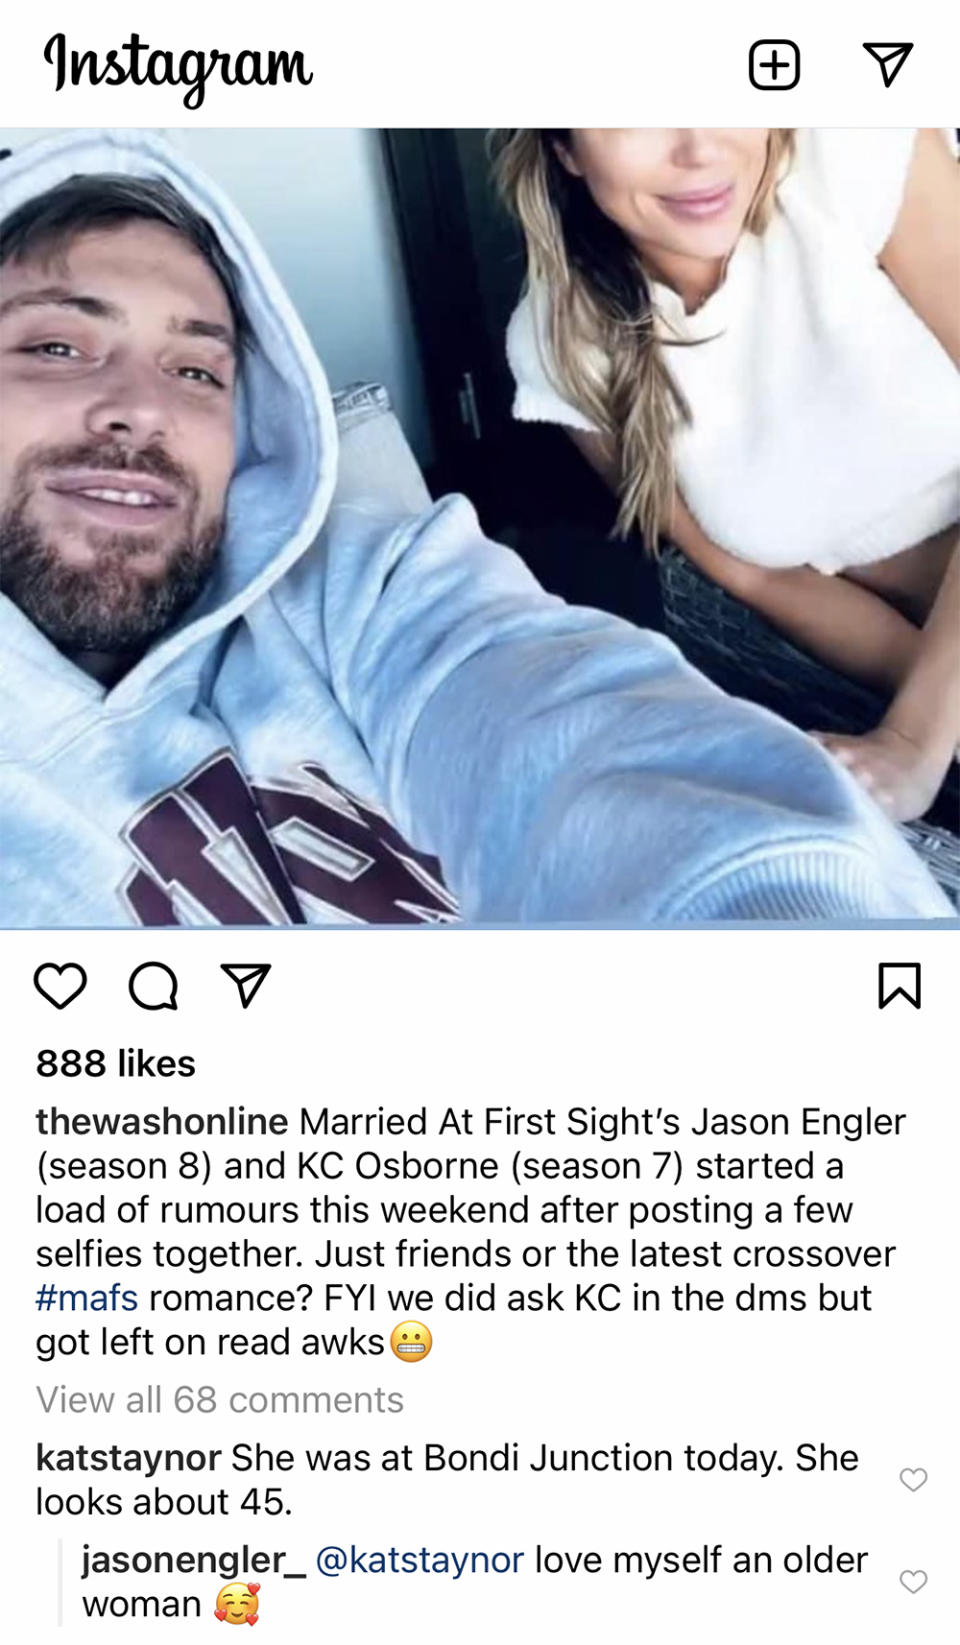 A screenshot of A selfie of Married At First Sight stars Jason Engler and KC Osborne with a comment by Jason Engler below